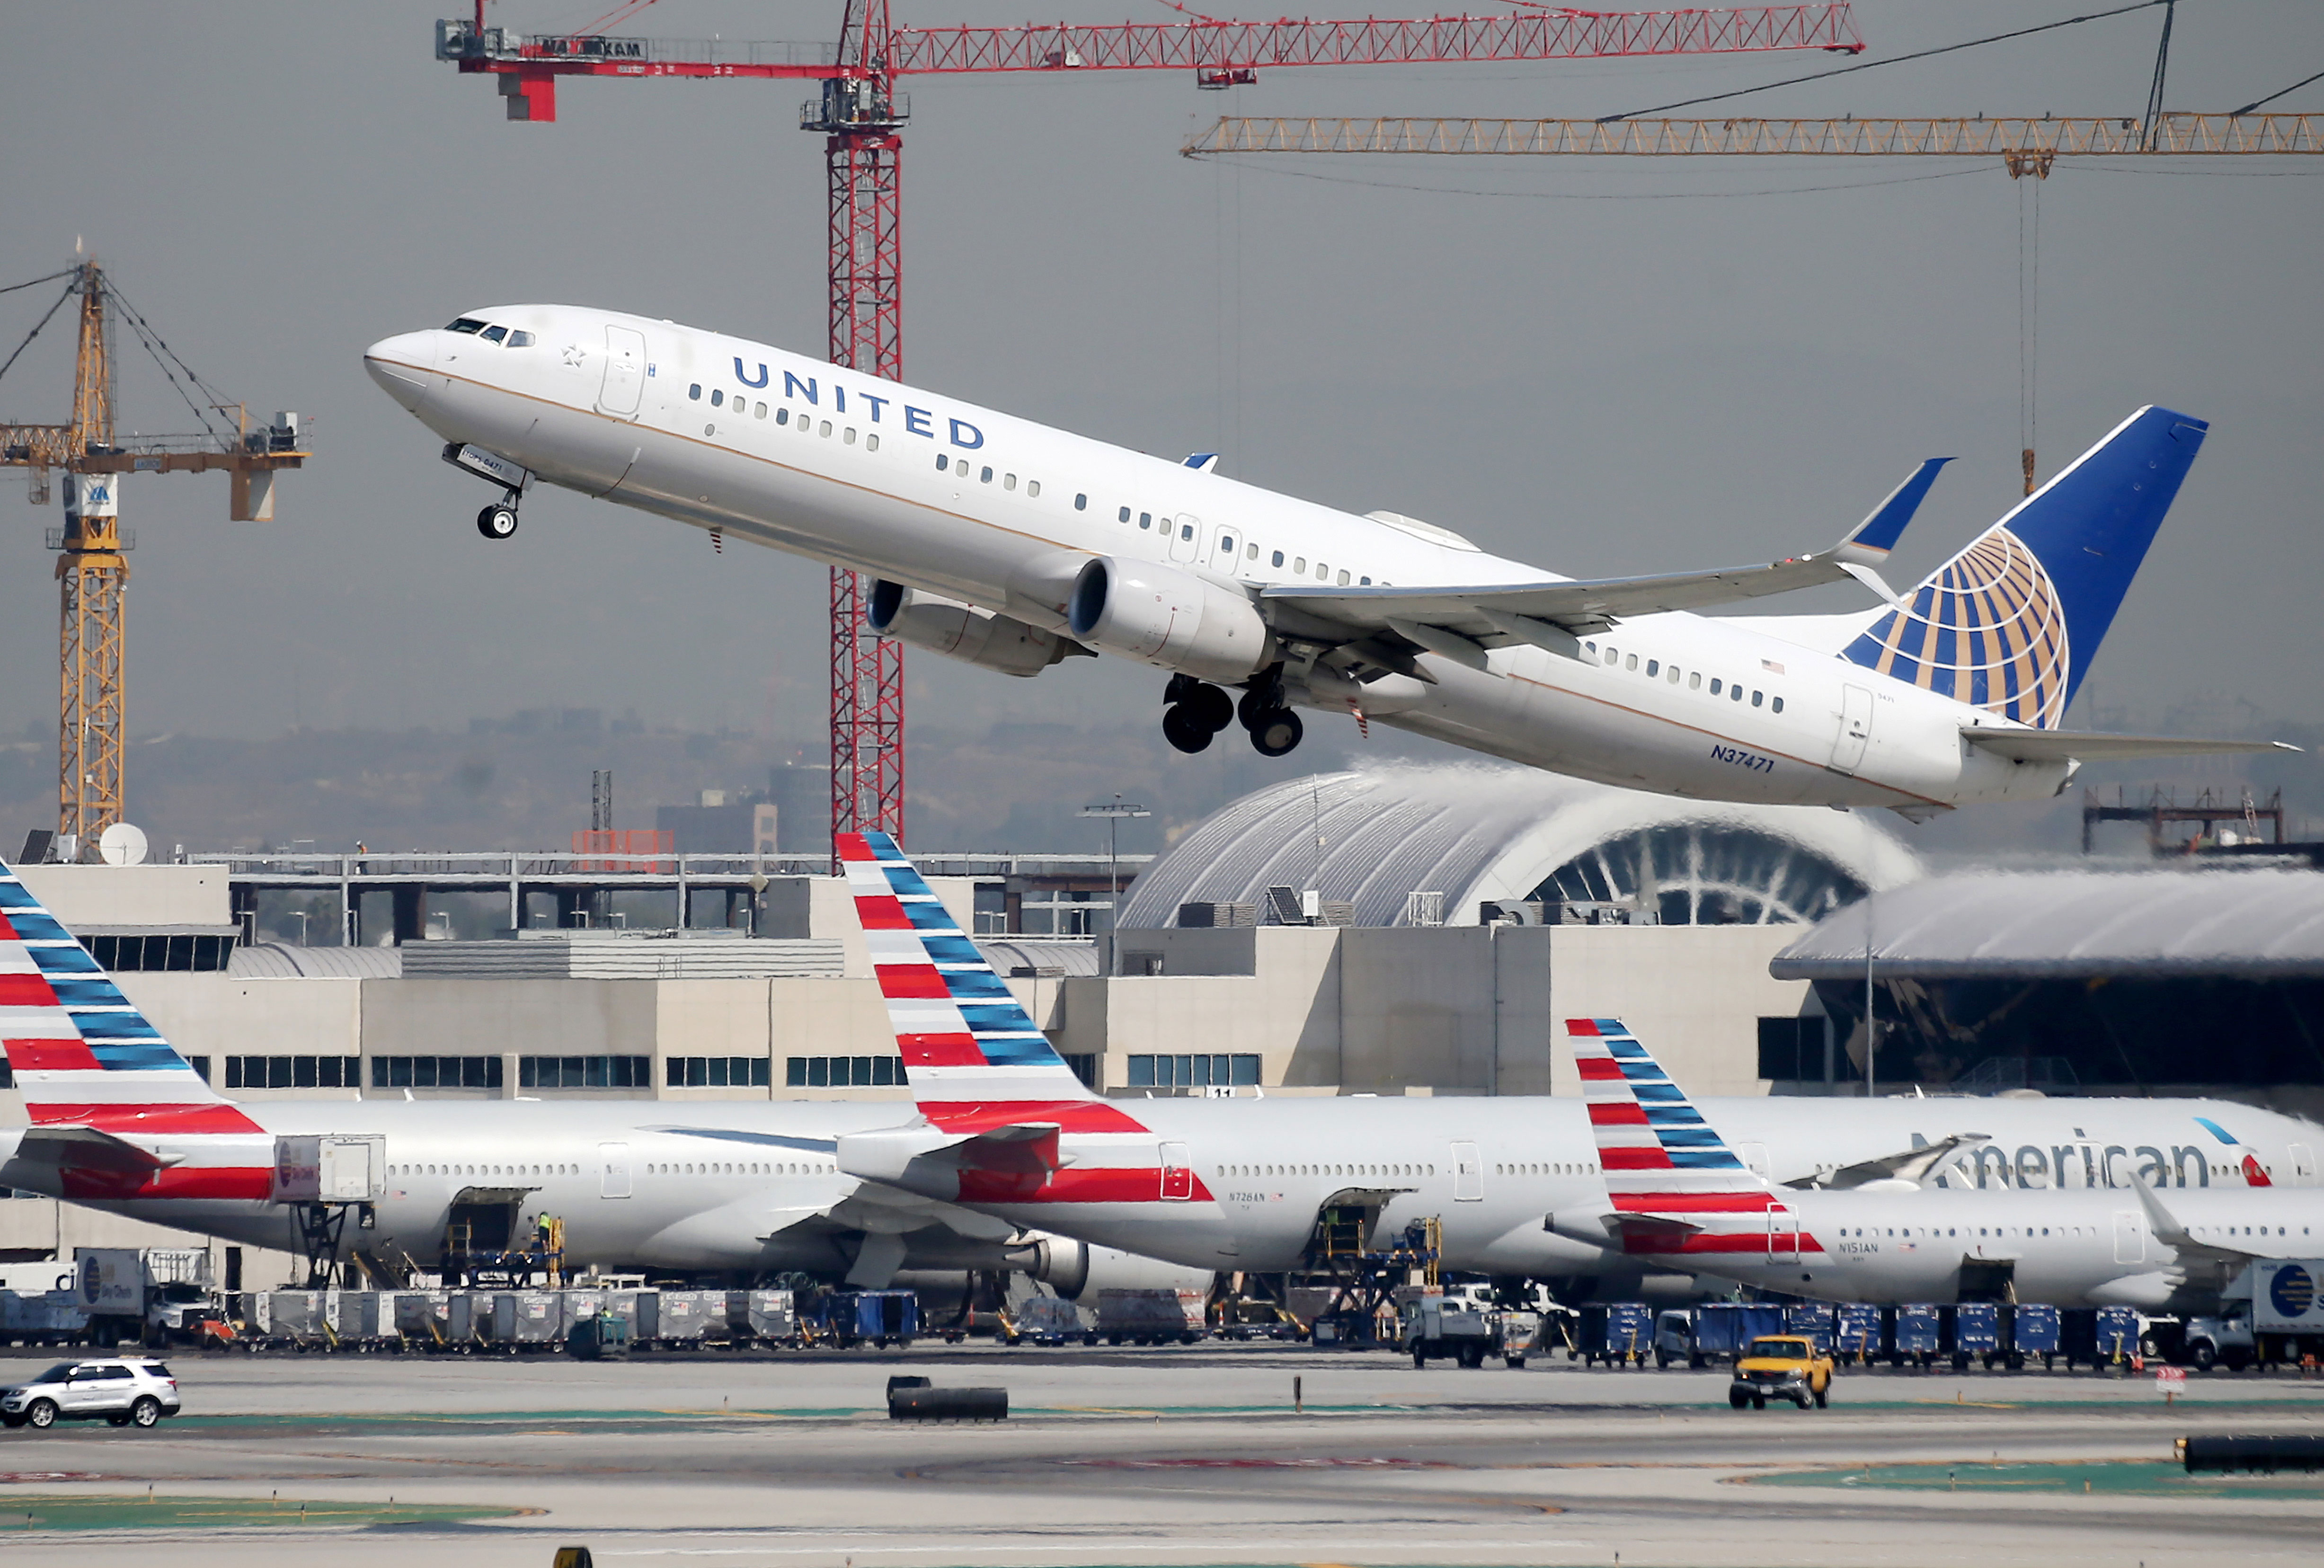 A United Airlines plane takes off at Los Angeles International Airport in California on October 1, 2020.